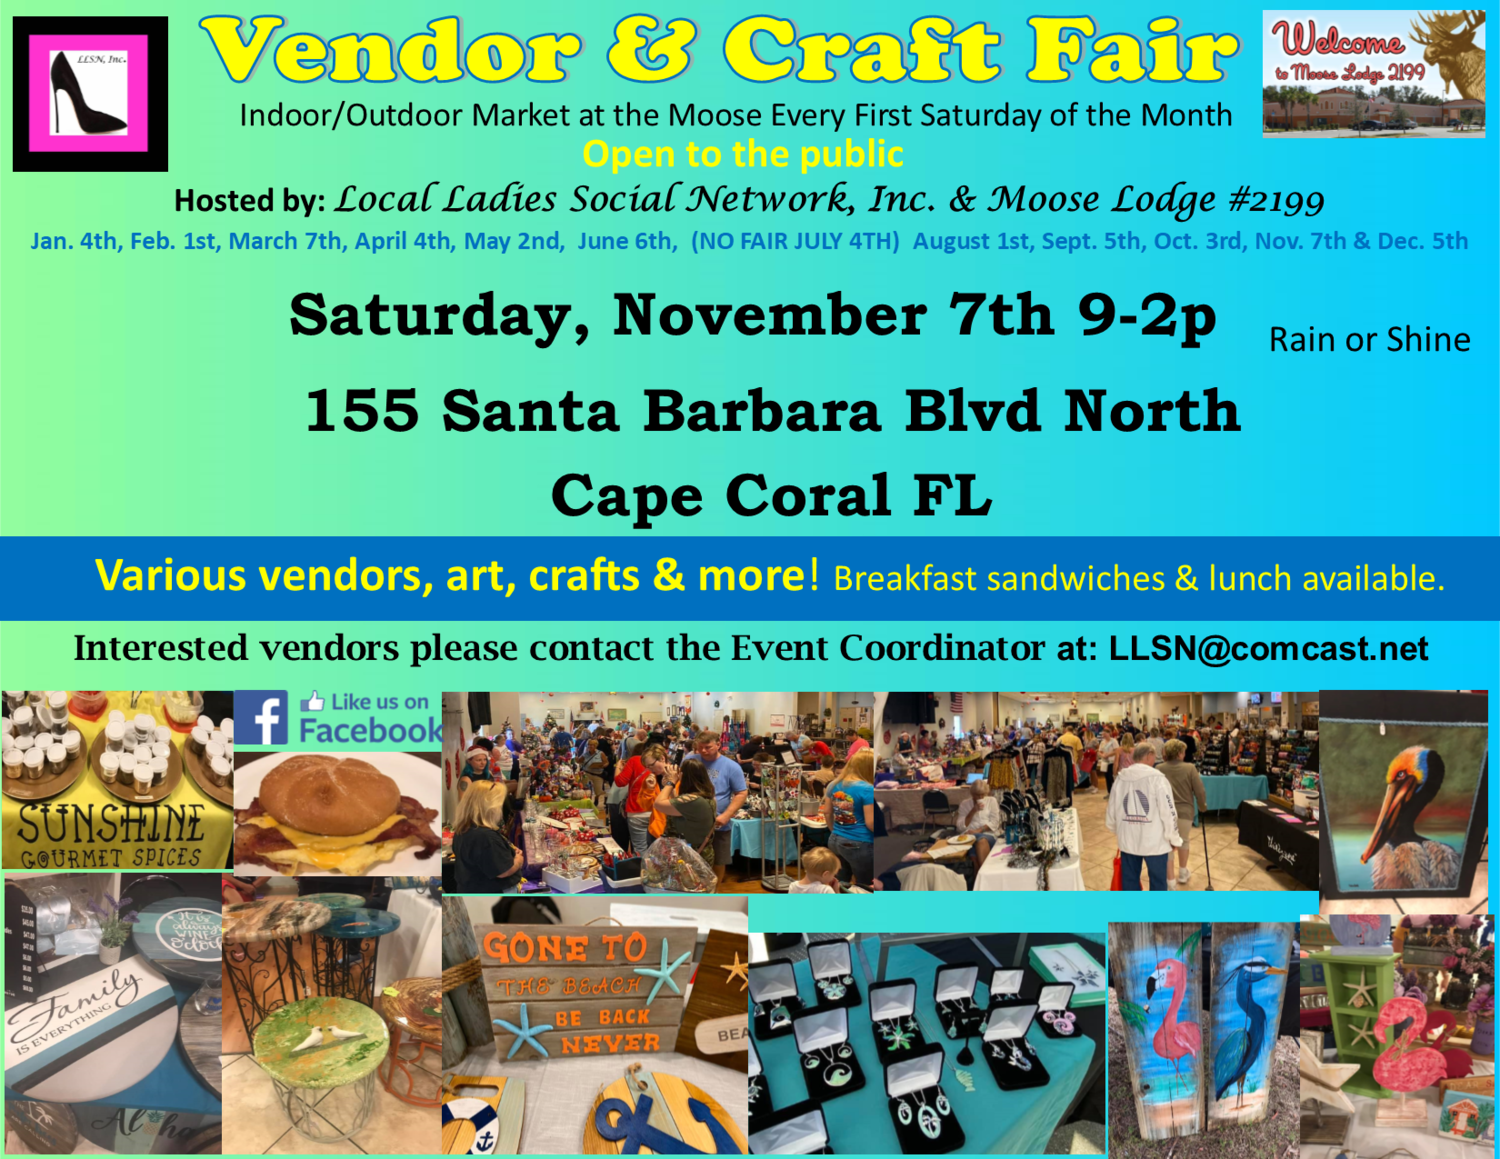 Vendor & Craft Fair- November 7th INSIDE SPOT- Includes table & chairs